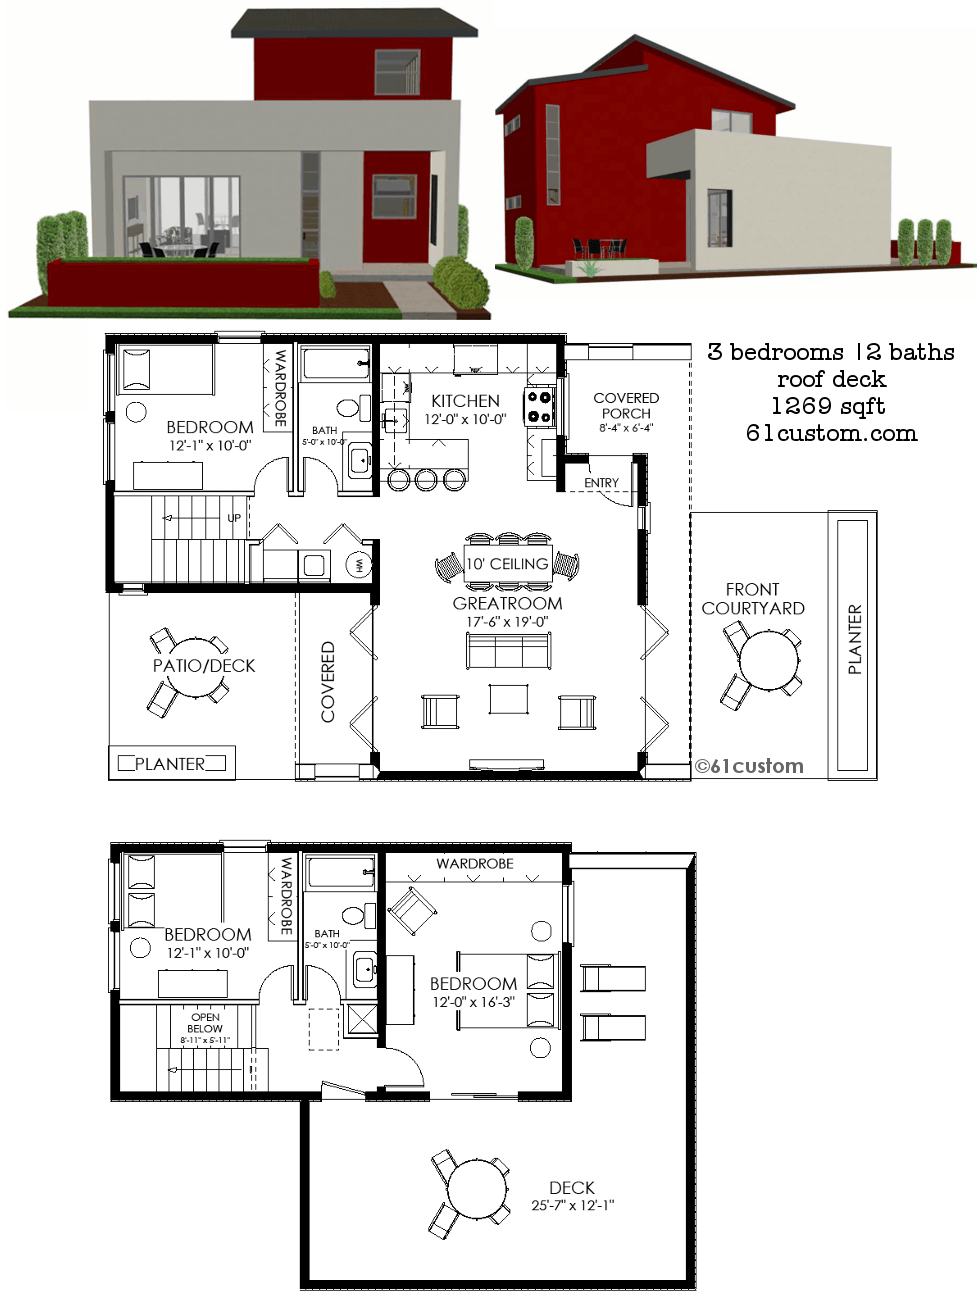 Contemporary small house plan 61custom contemporary Modern home building plans